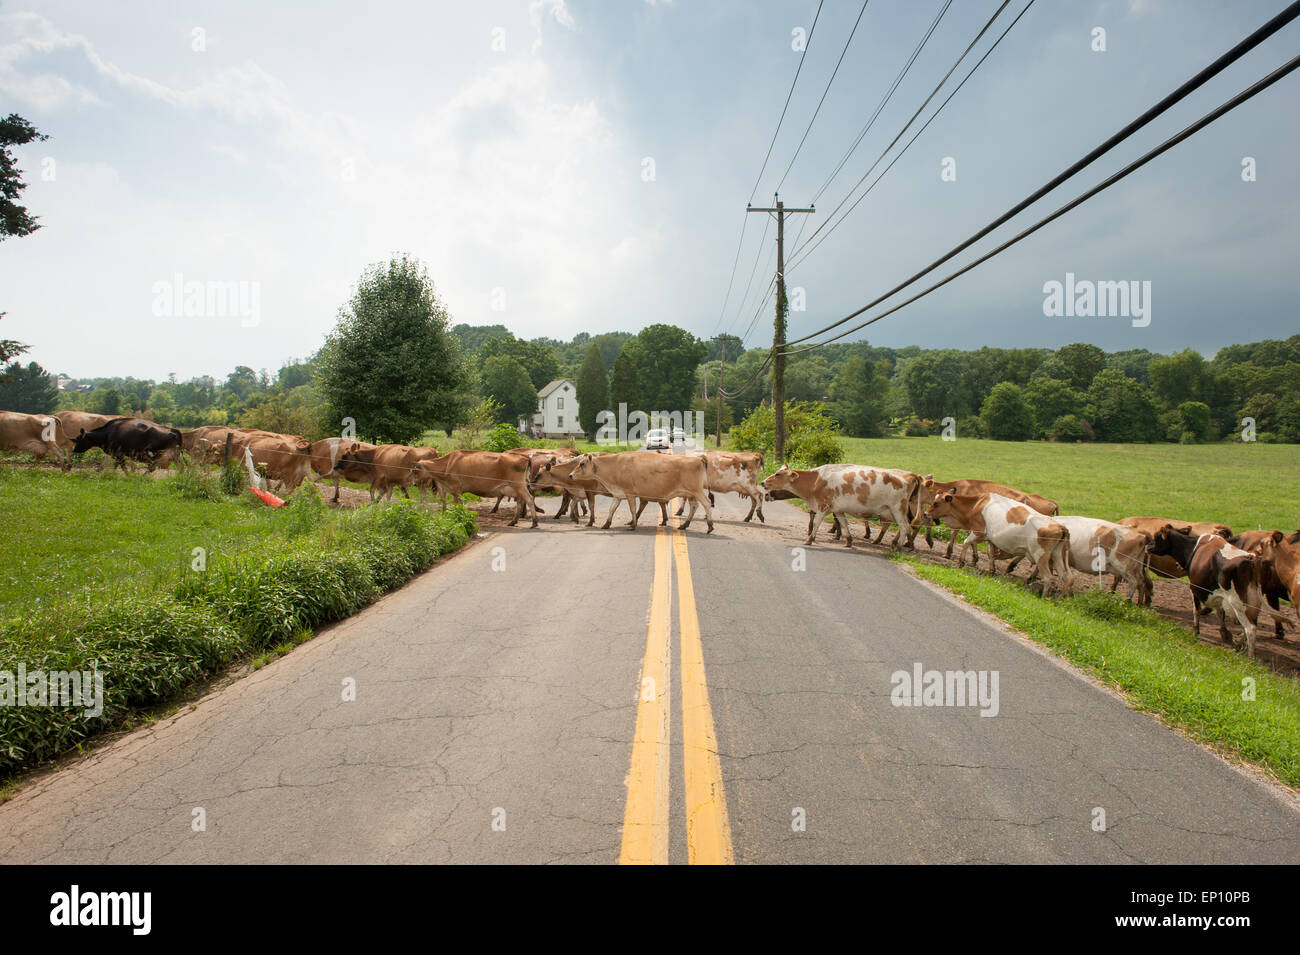 Les vaches qui traversent la route près de Long Green, Maryland, USA Photo Stock